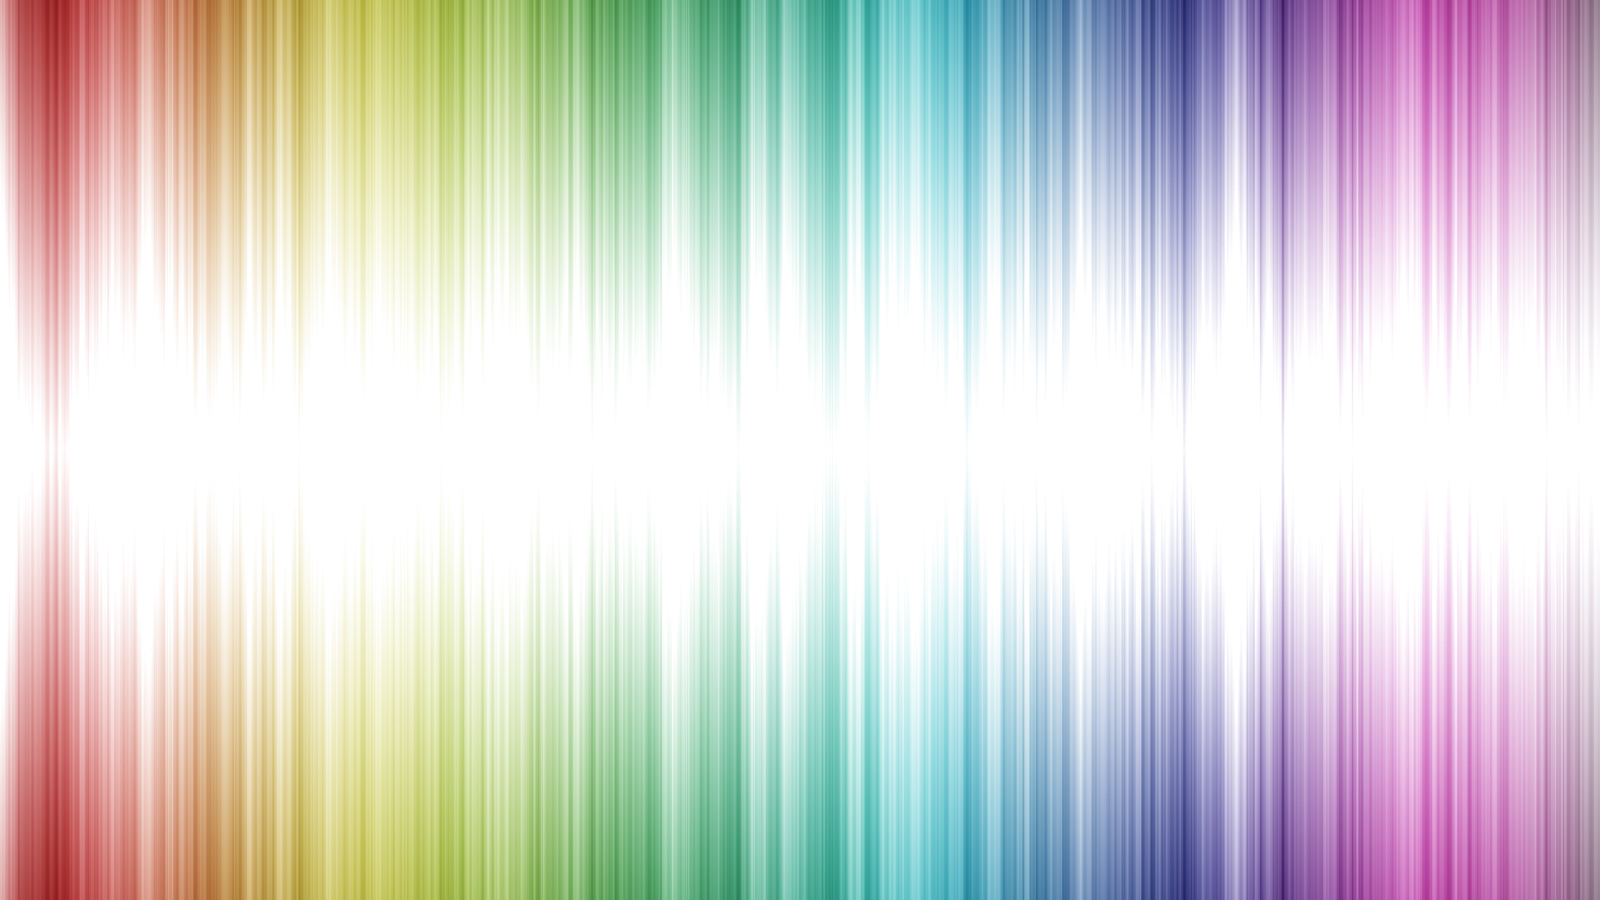 Background images free - Rainbow Twitter Backgrounds Free Downloads